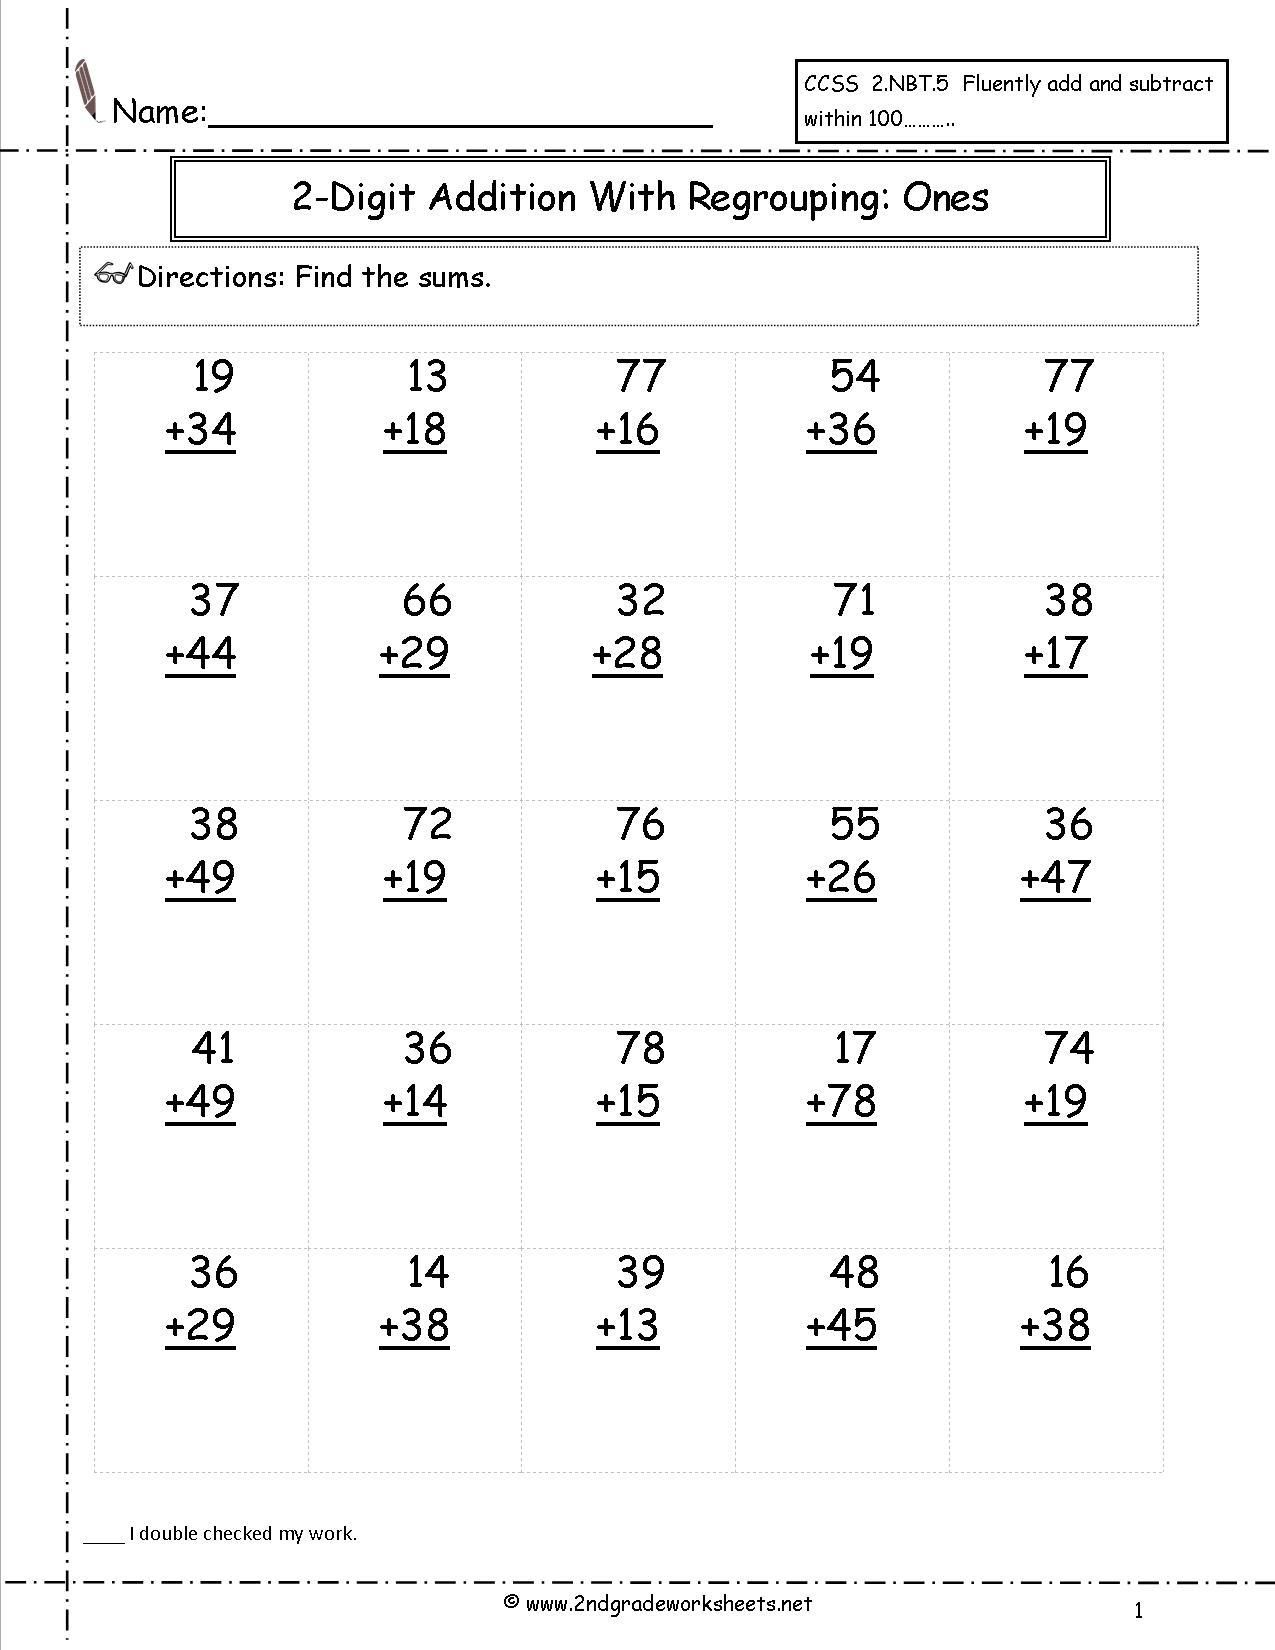 Printable Math Sheets For 2nd Grade In 2020 2nd Grade Math